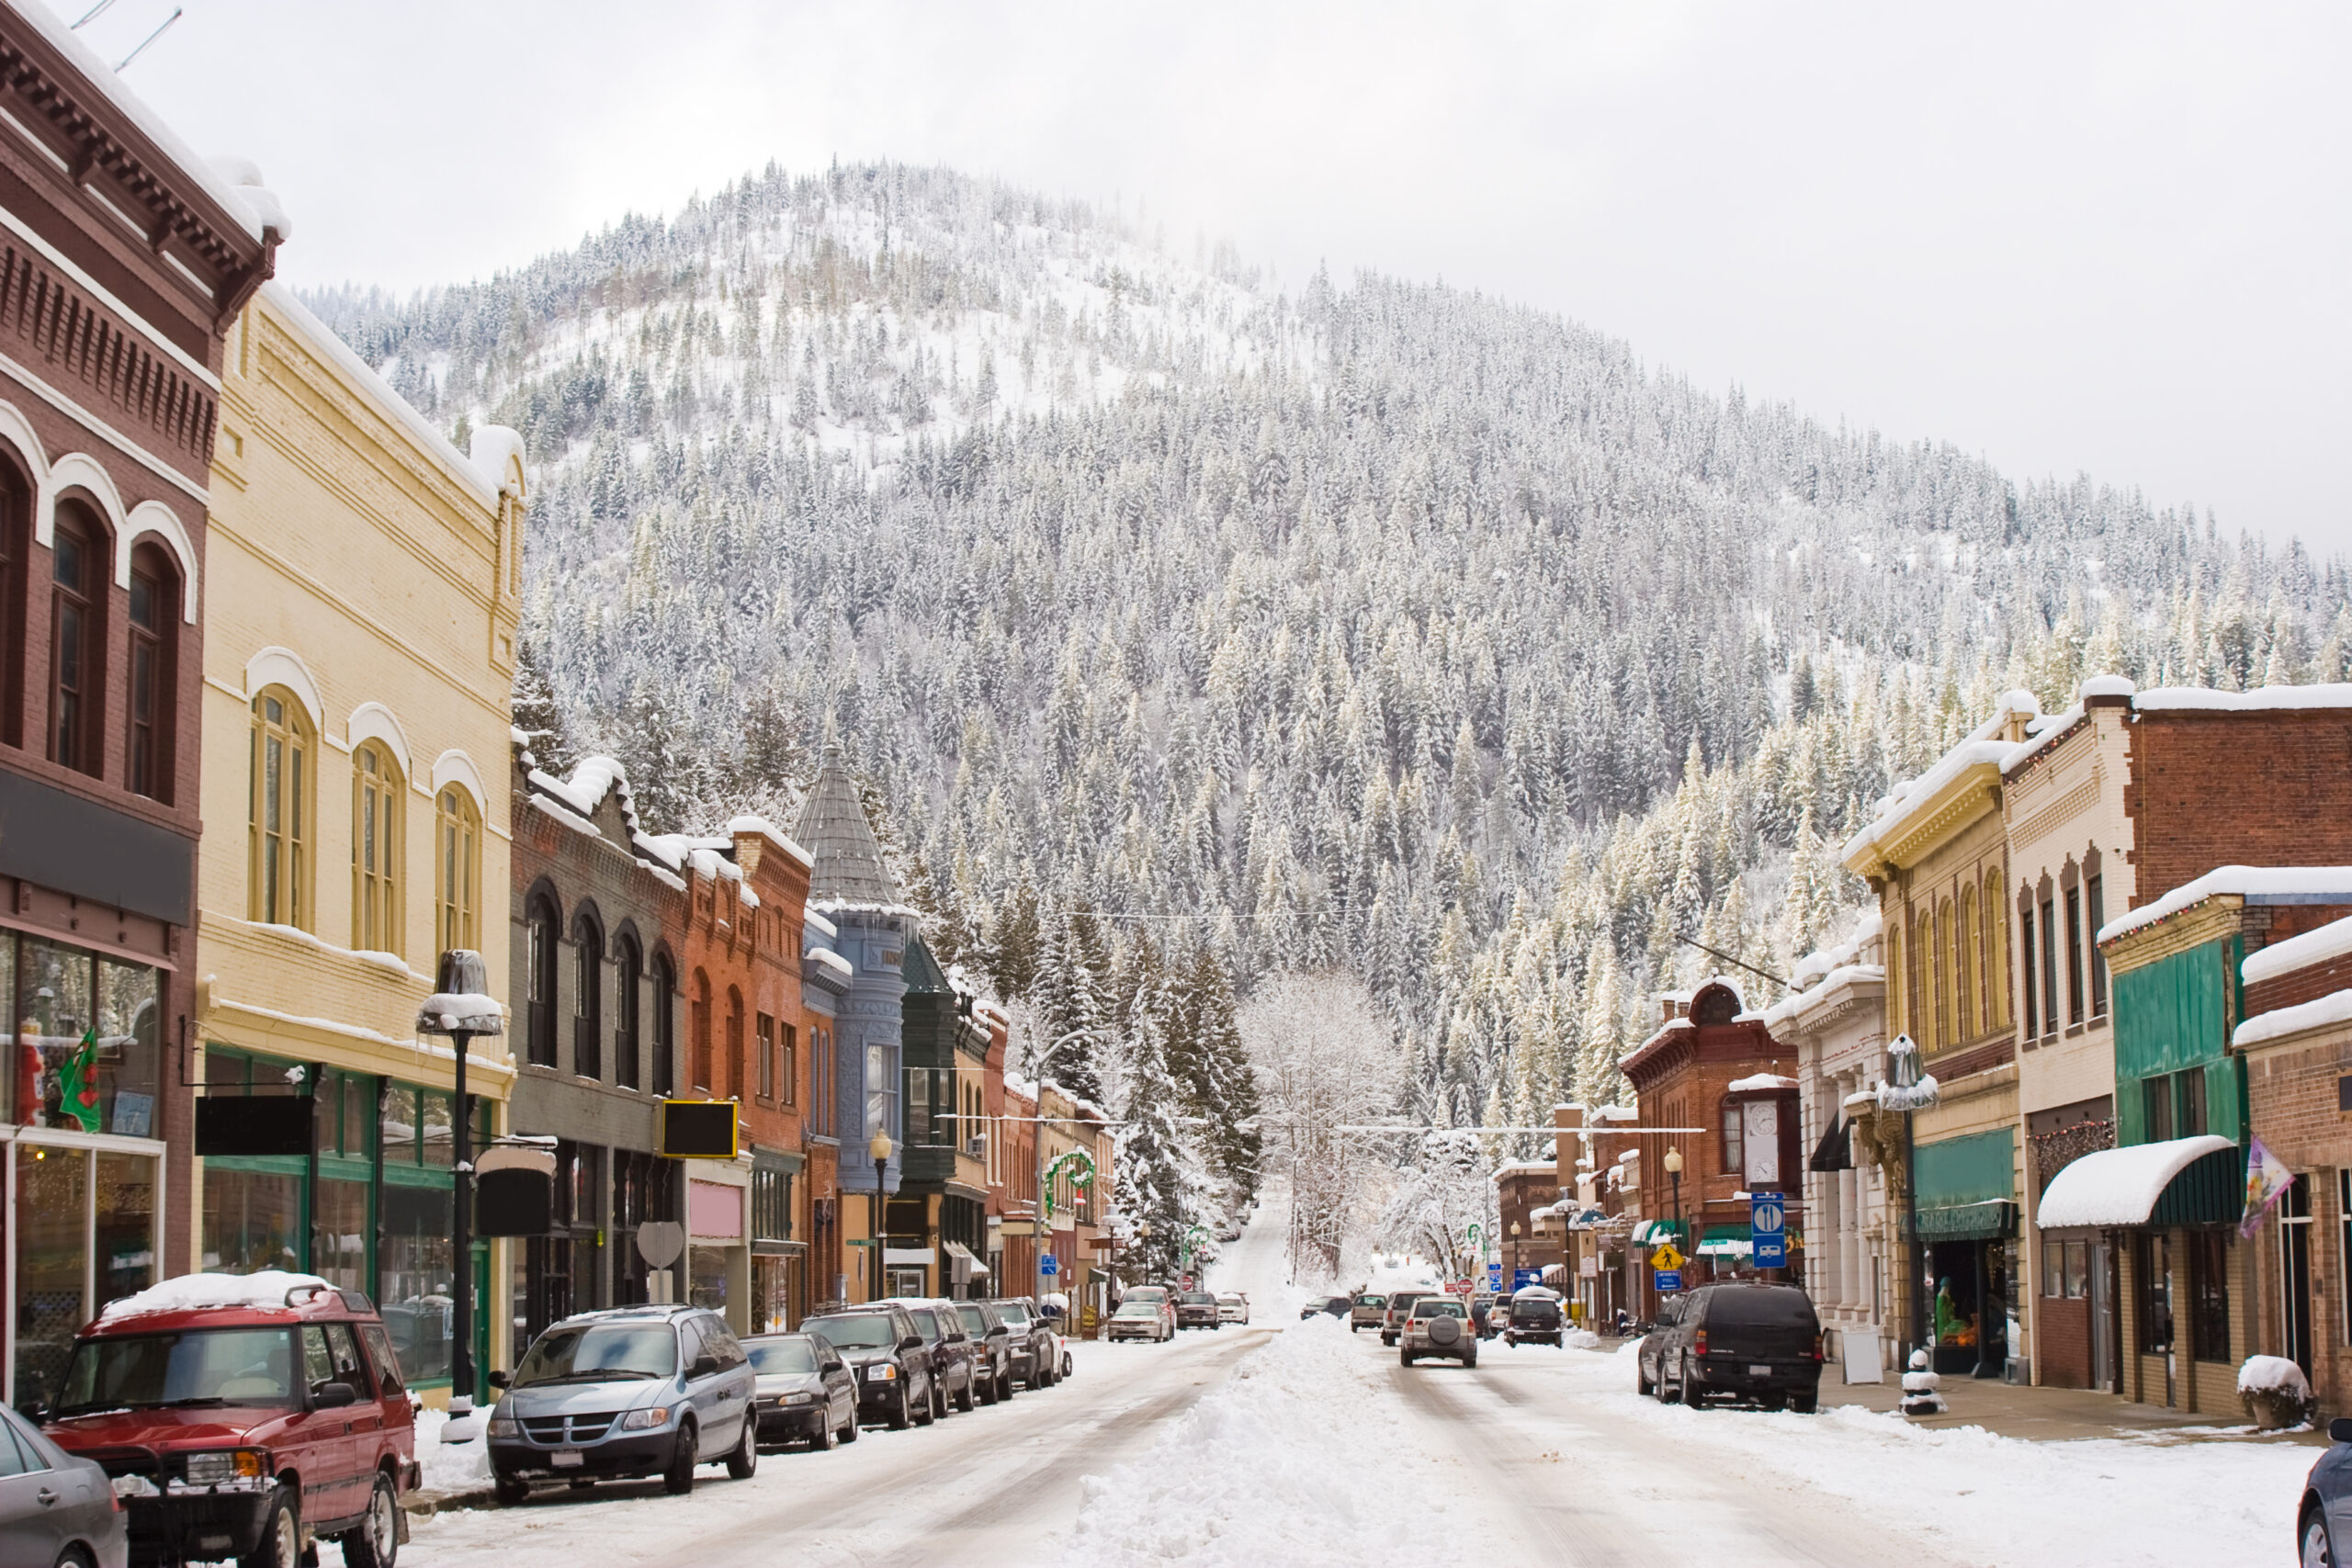 snowy street in historic downtown wallace, one of the best small towns in idaho